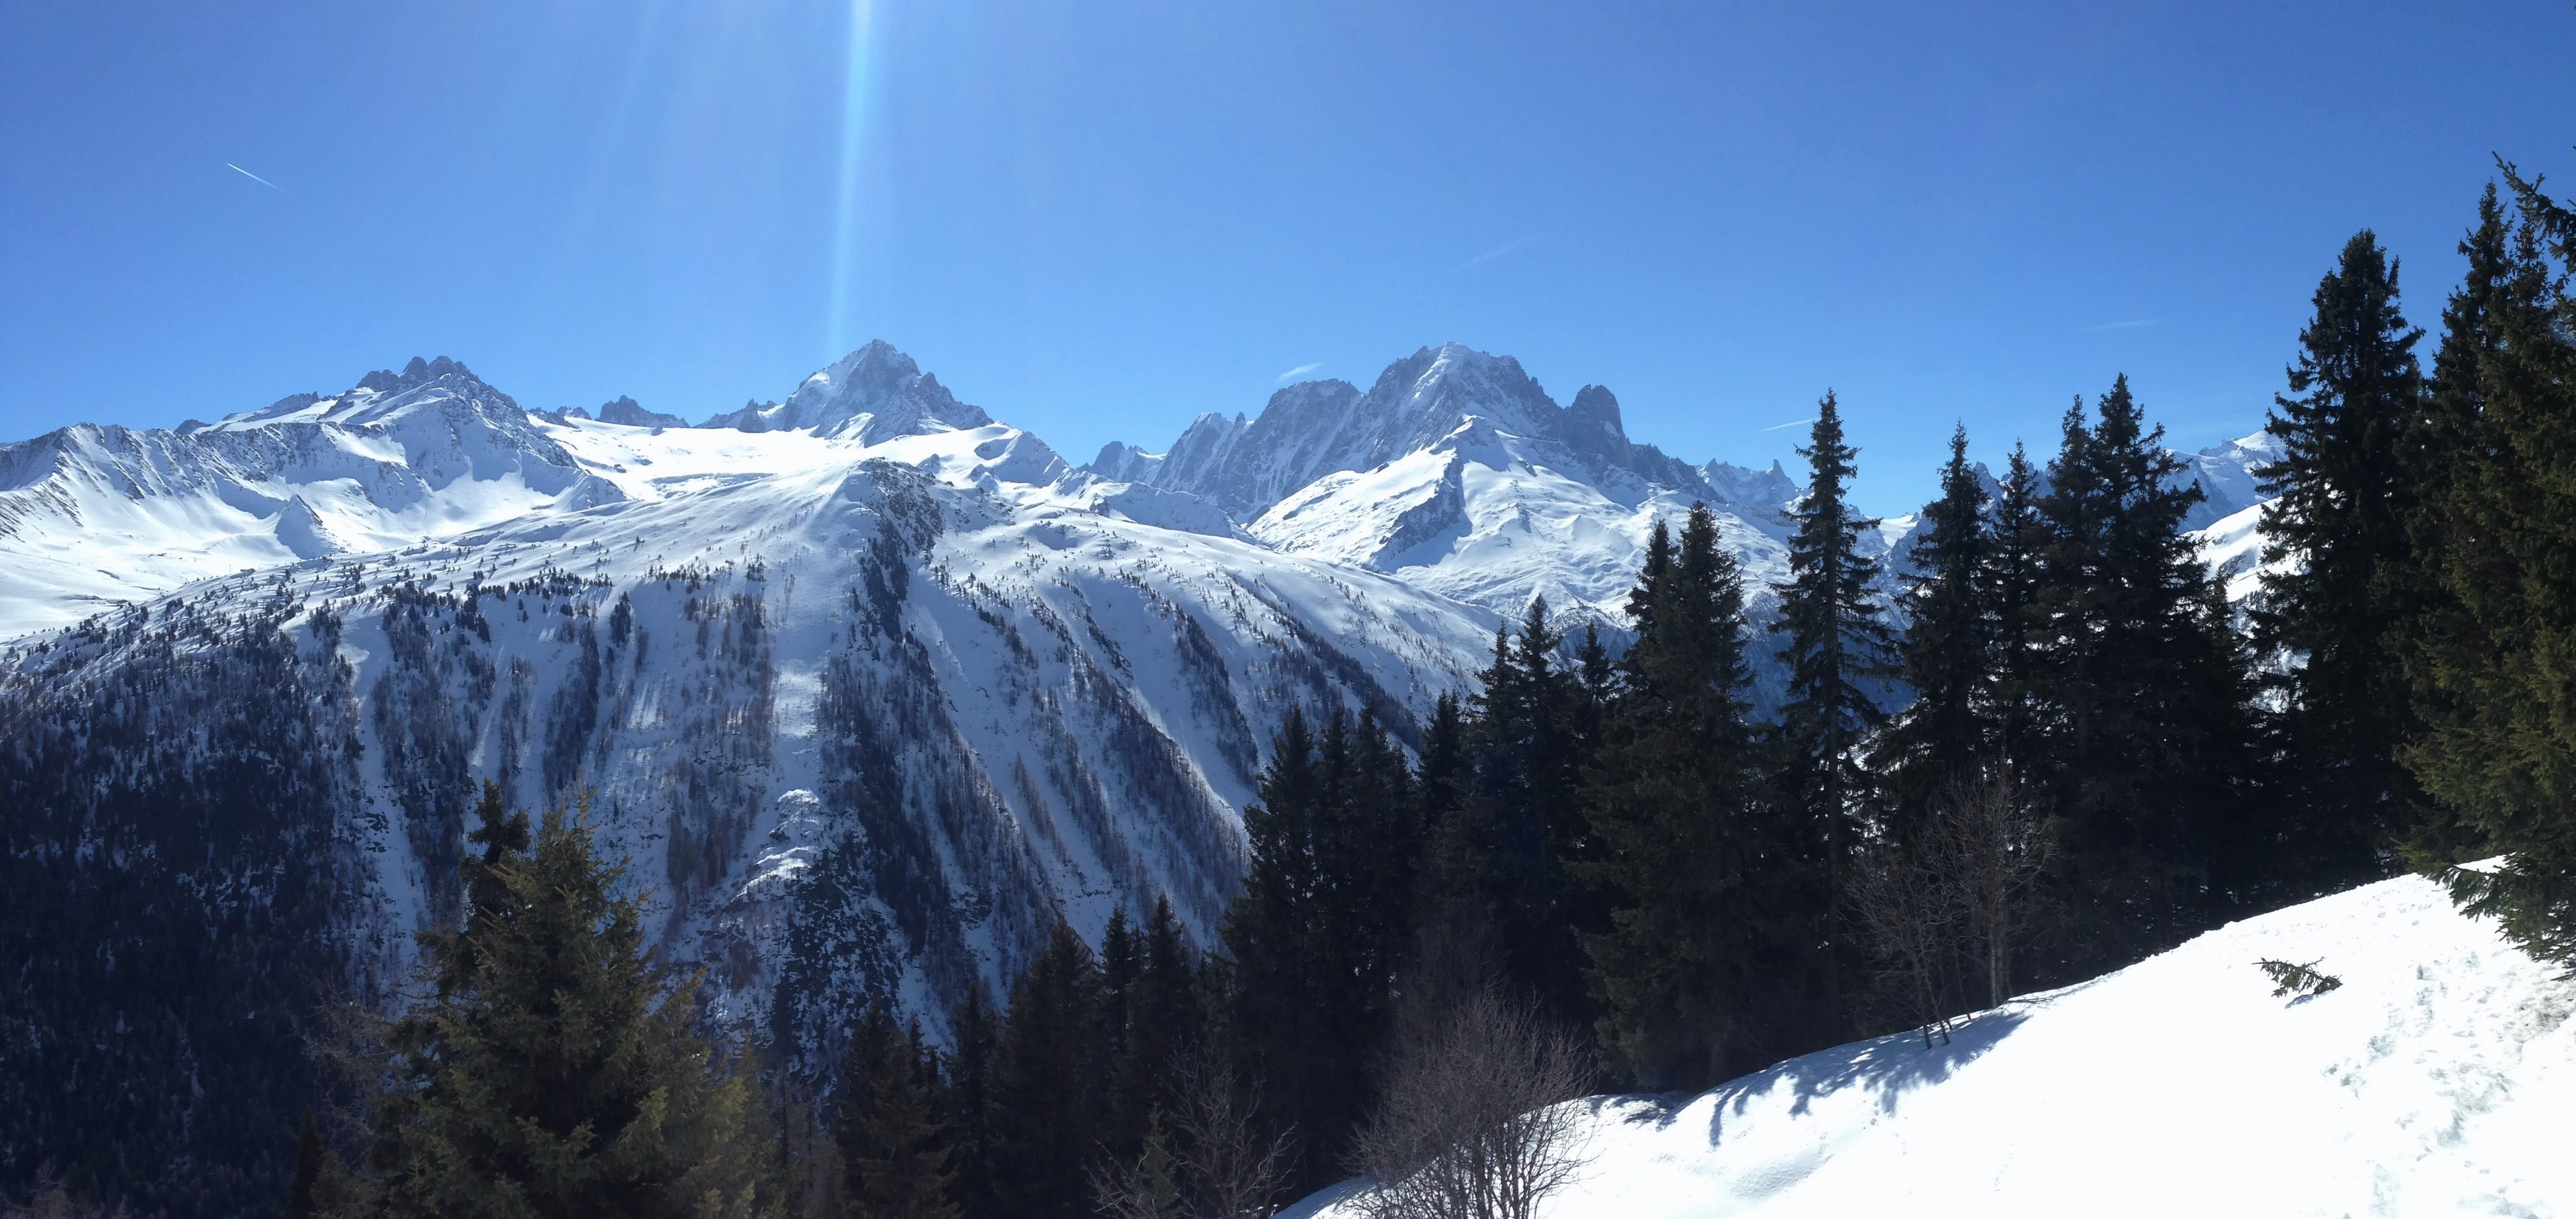 Chamonix Ski Touring with Martin